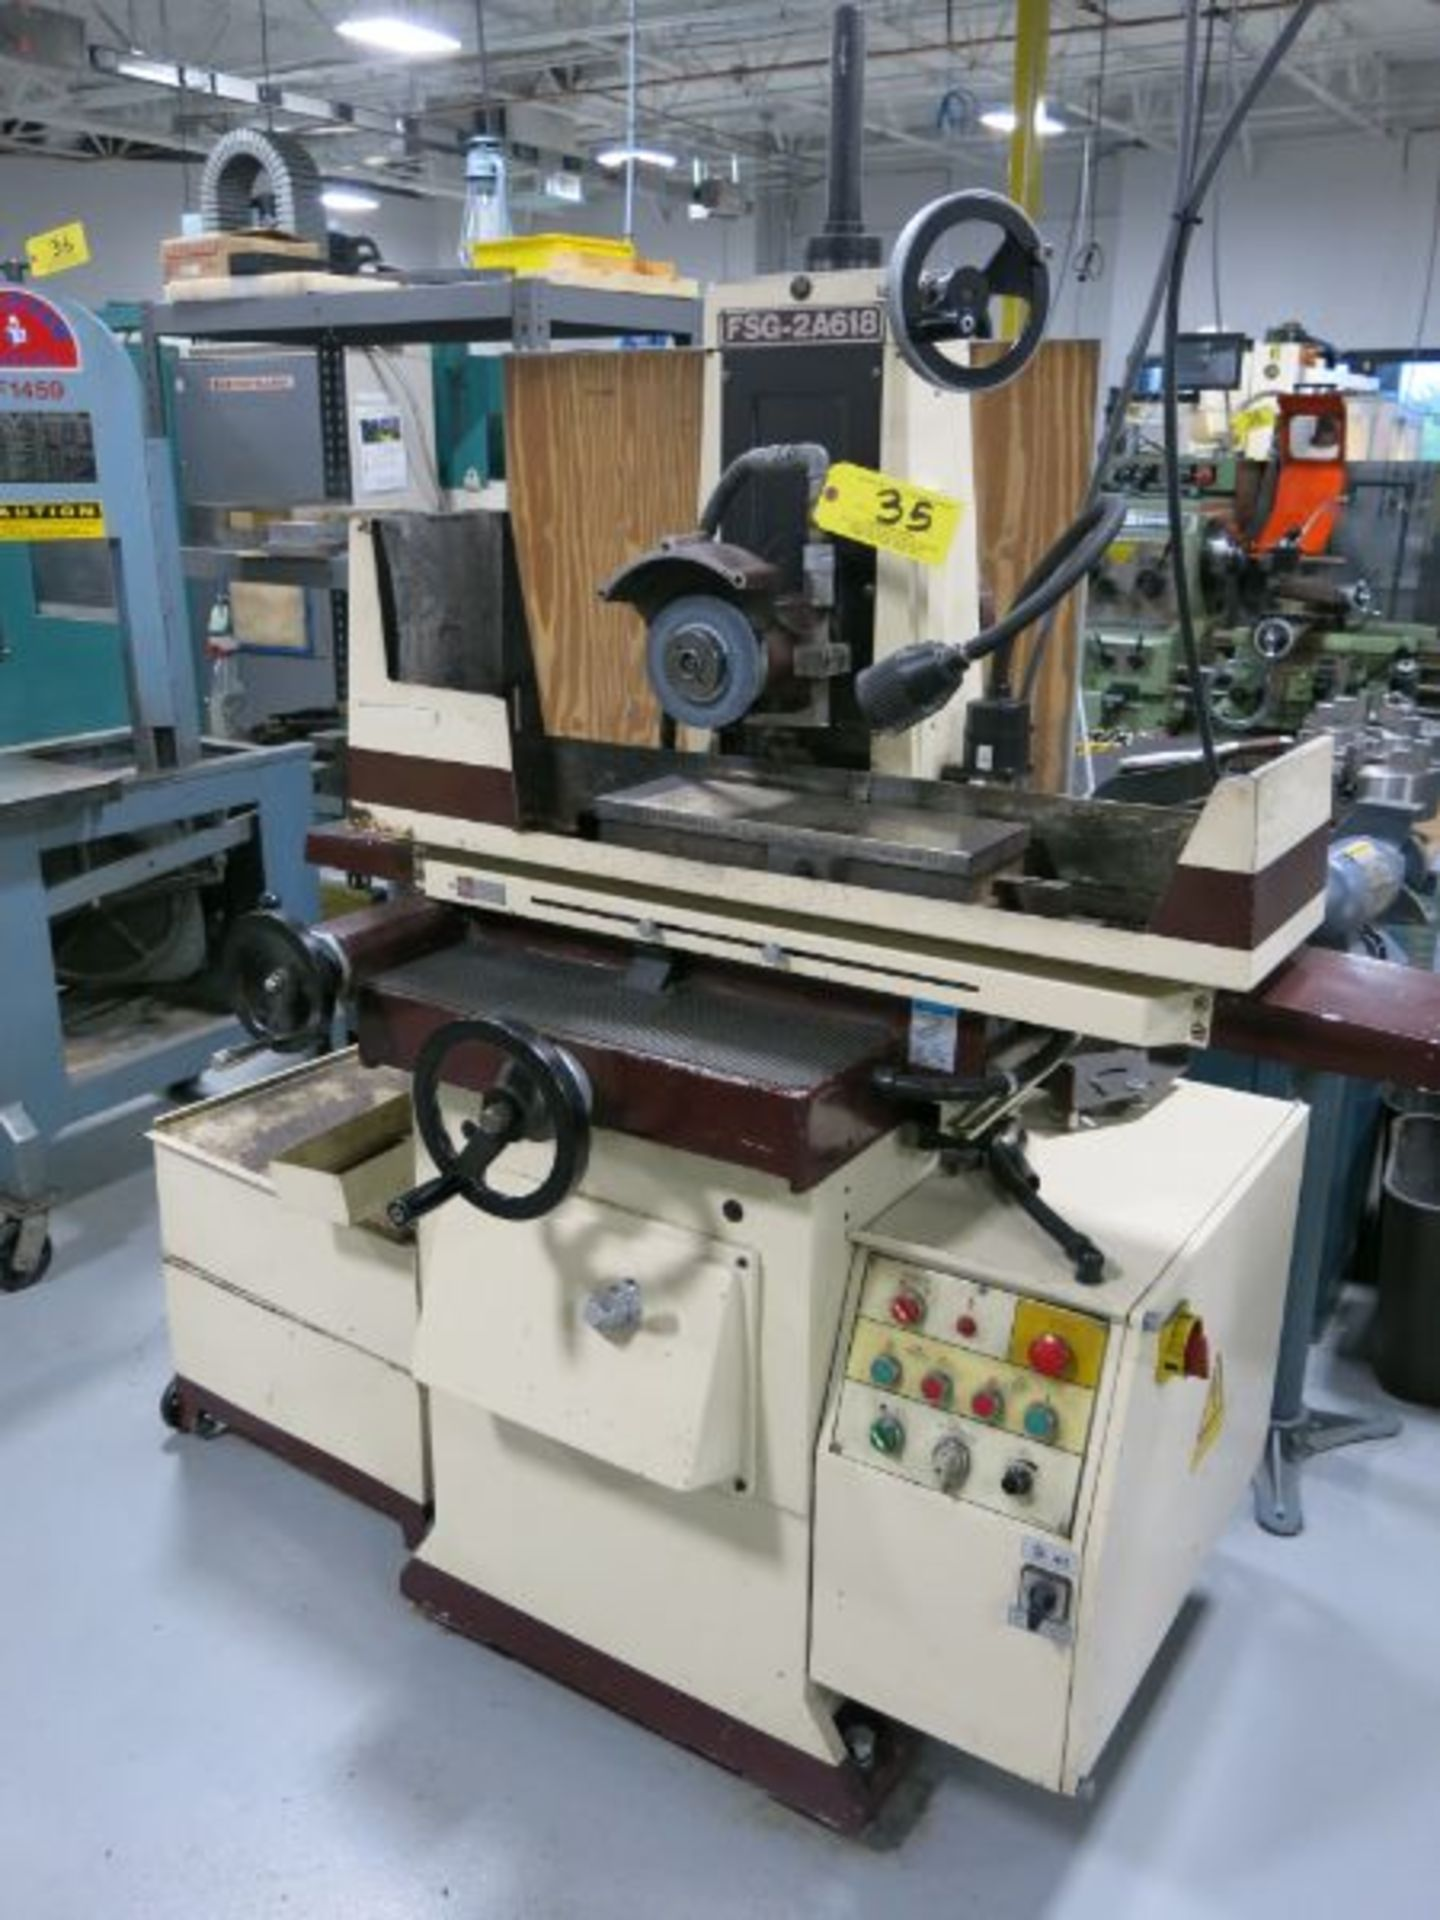 1998 Chevalier/Falcon Surface Grinder